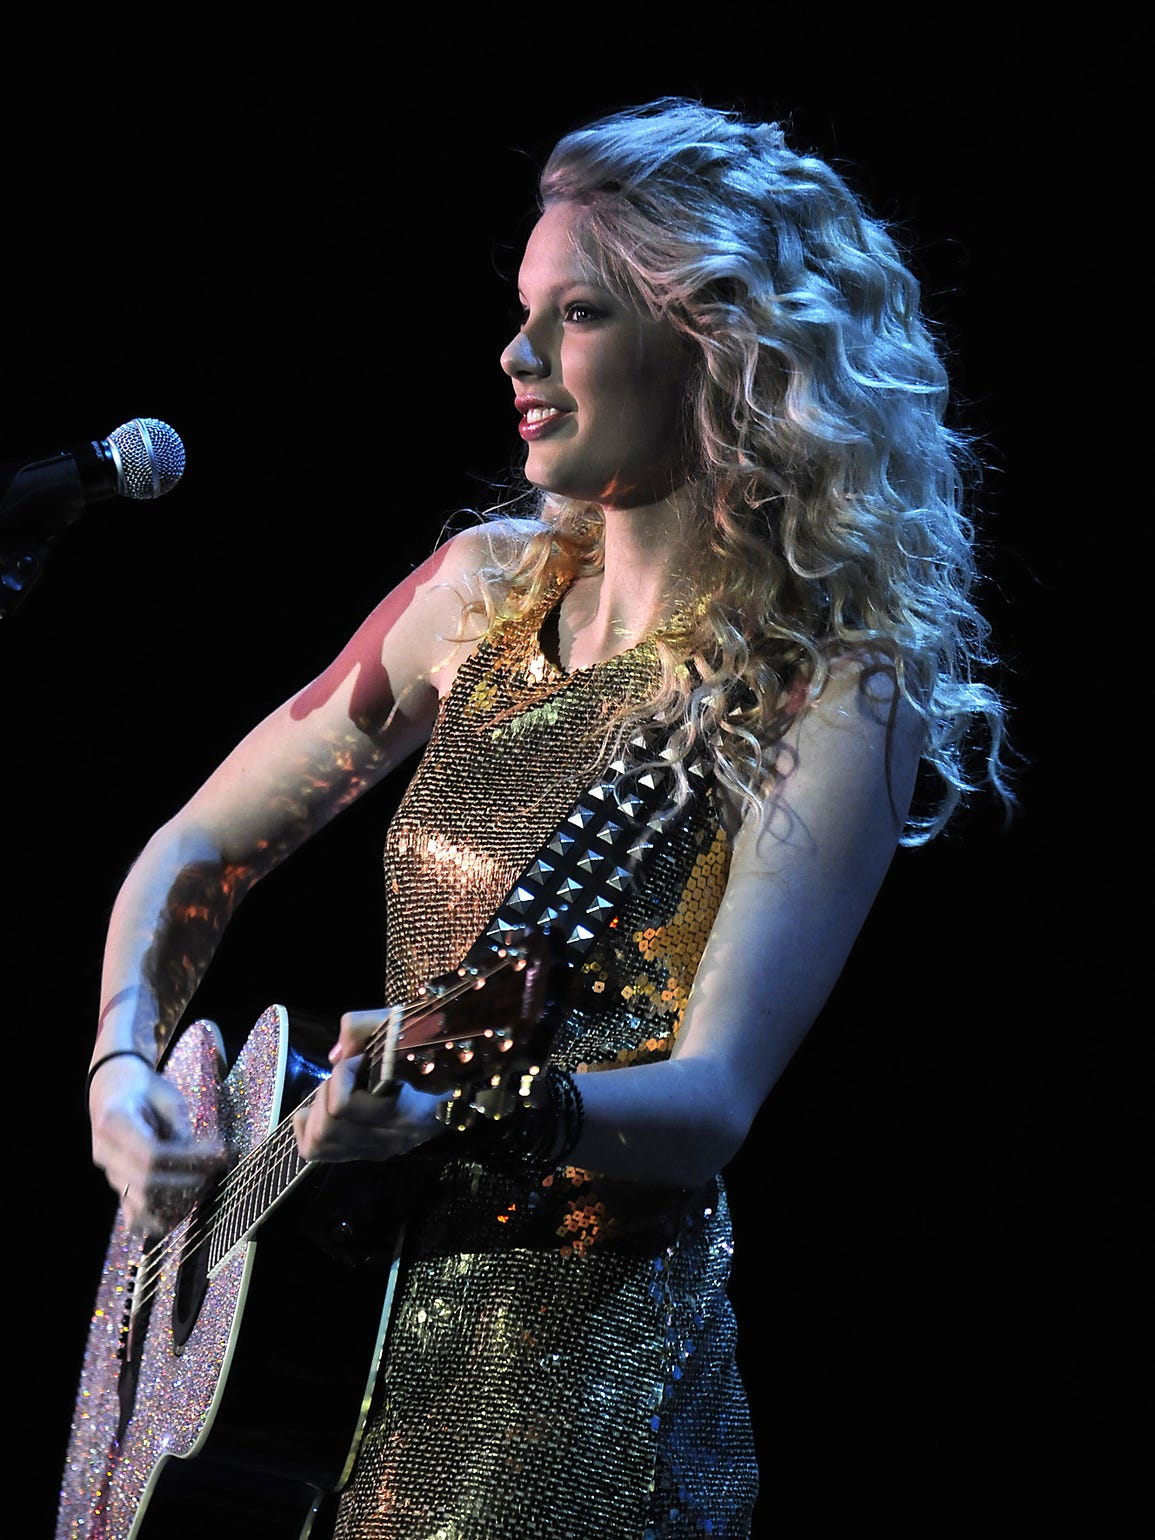 An 18-year-old Taylor Swift opened for Rascal Flatts